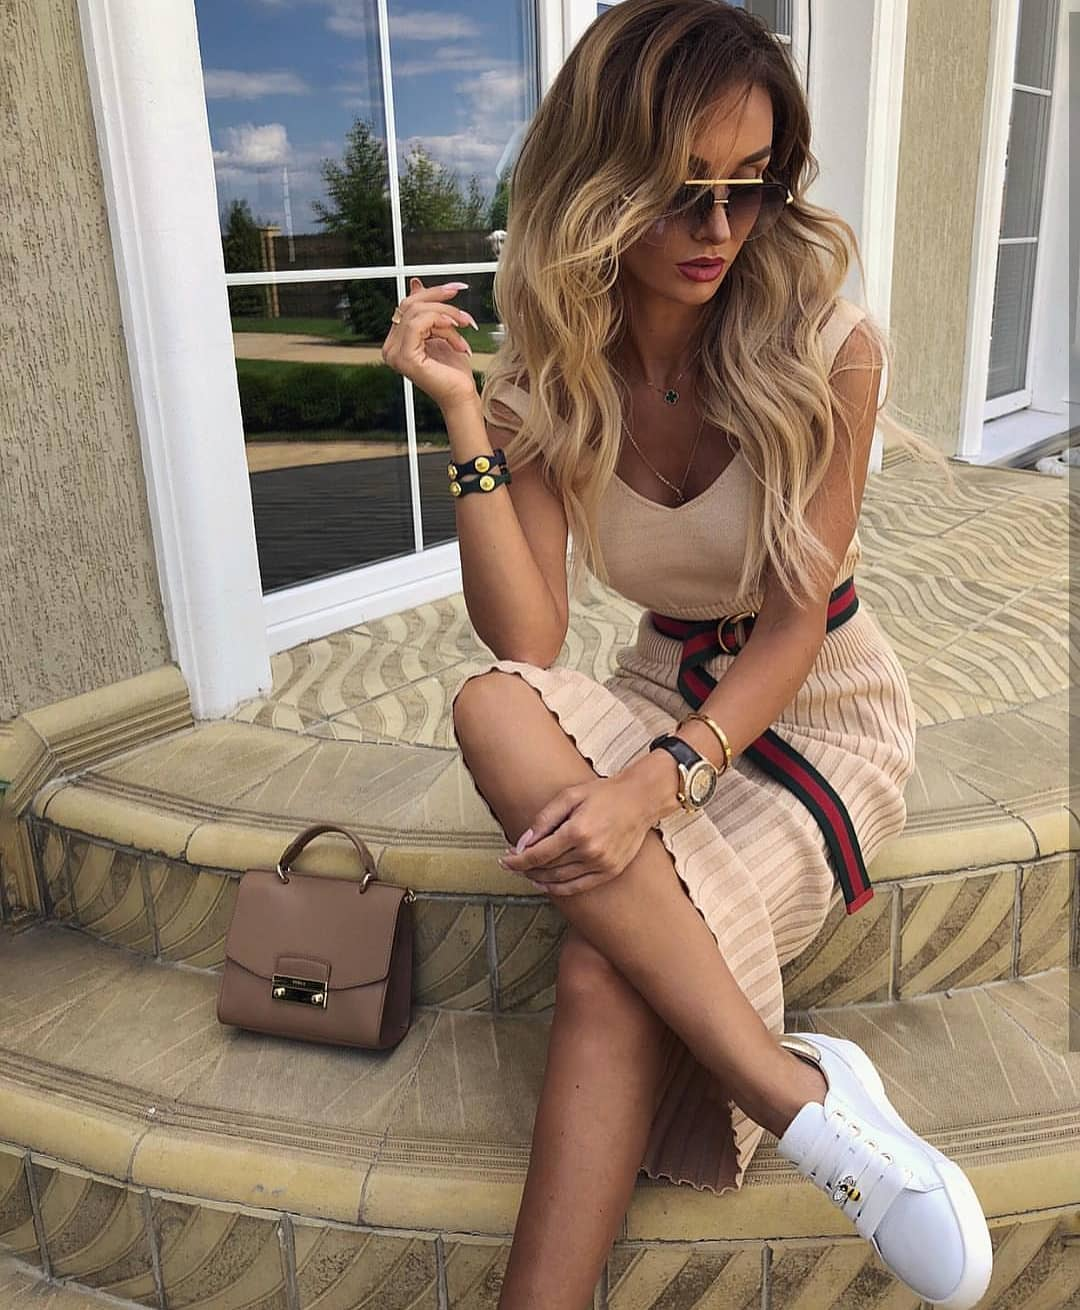 Beige Knitted Tank Dress With A Belt And White Sneakers For Summer 2021